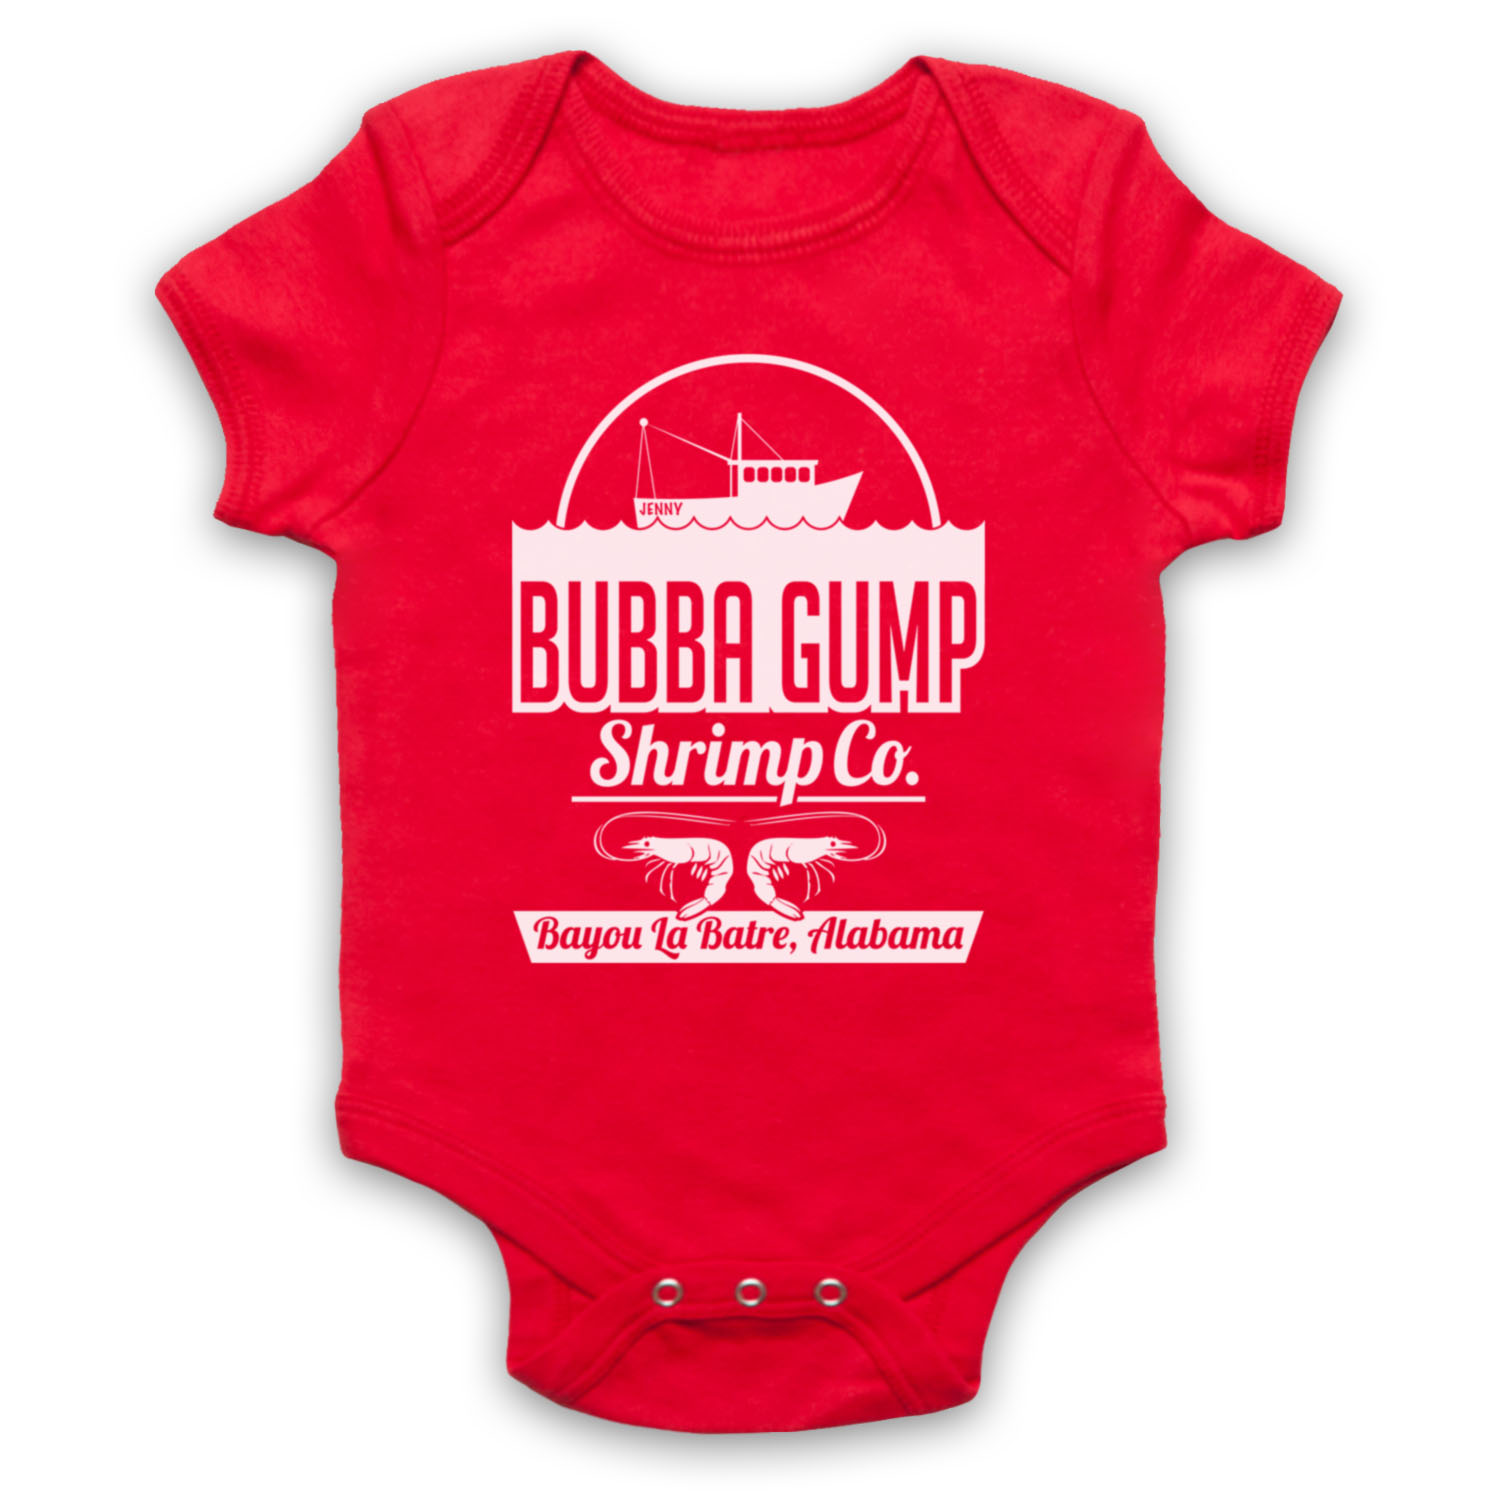 FORREST GUMP UNOFFICIAL BUBBA GUMP SHRIMP CO FOREST BABY GROW